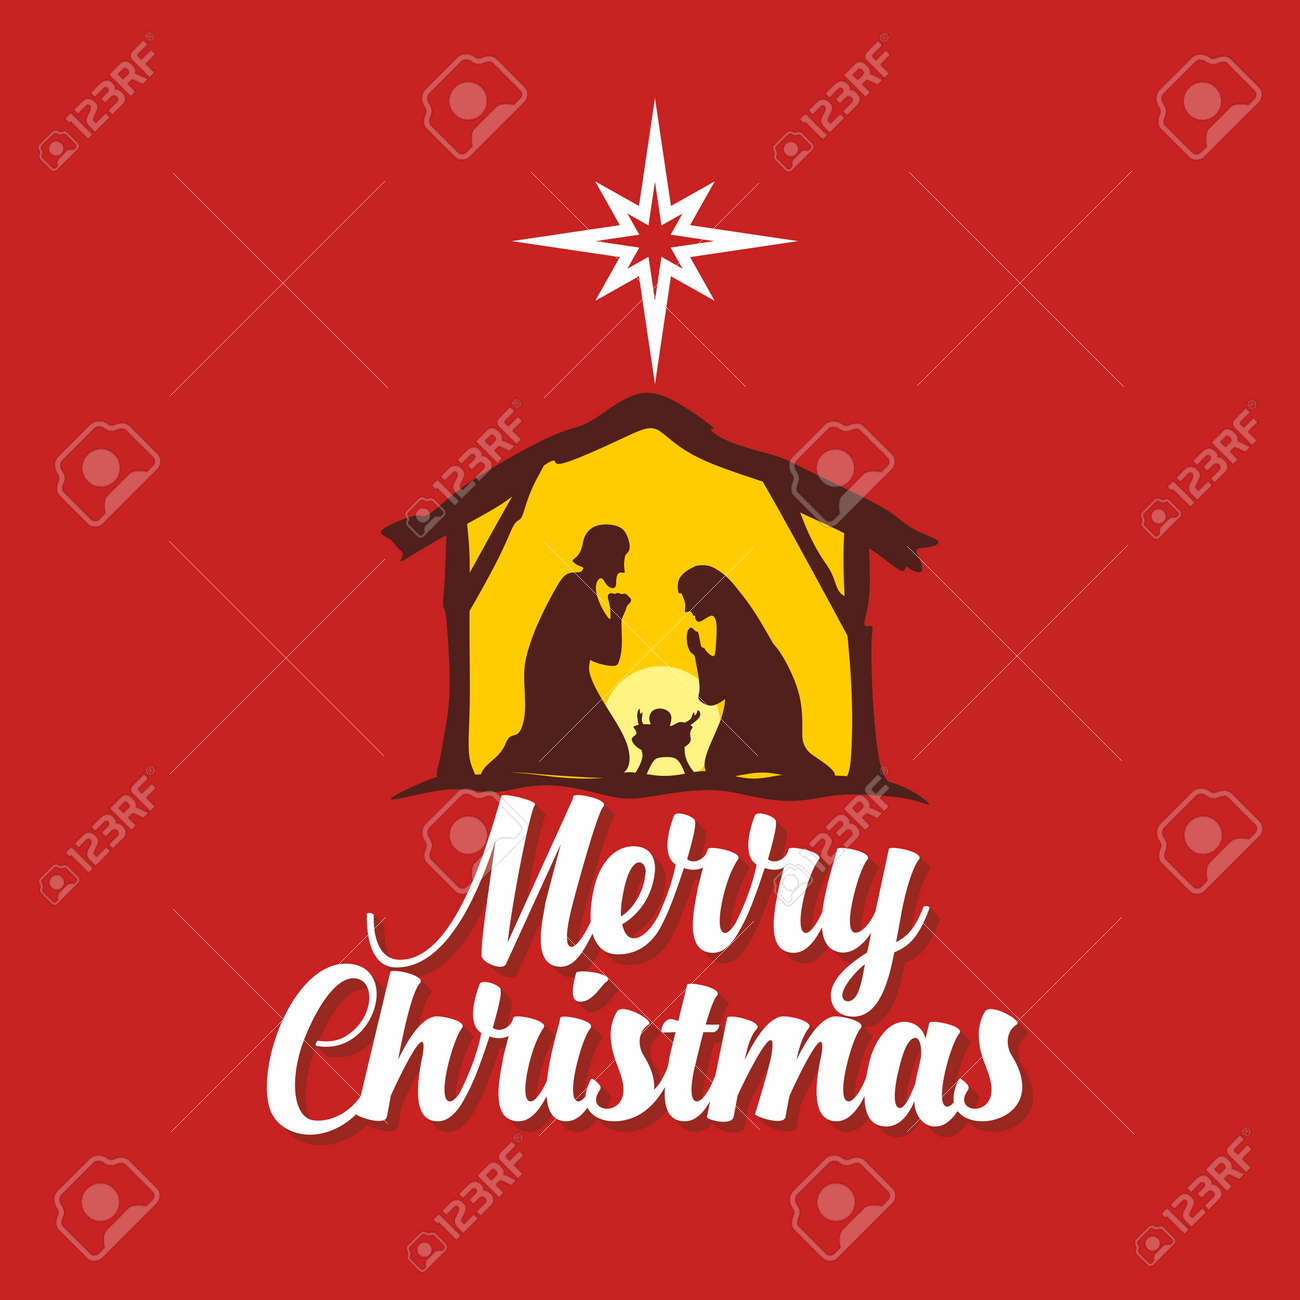 A Christmas Story Logo Vector.Greeting Card With A Christmas Story Mary And Joseph With The